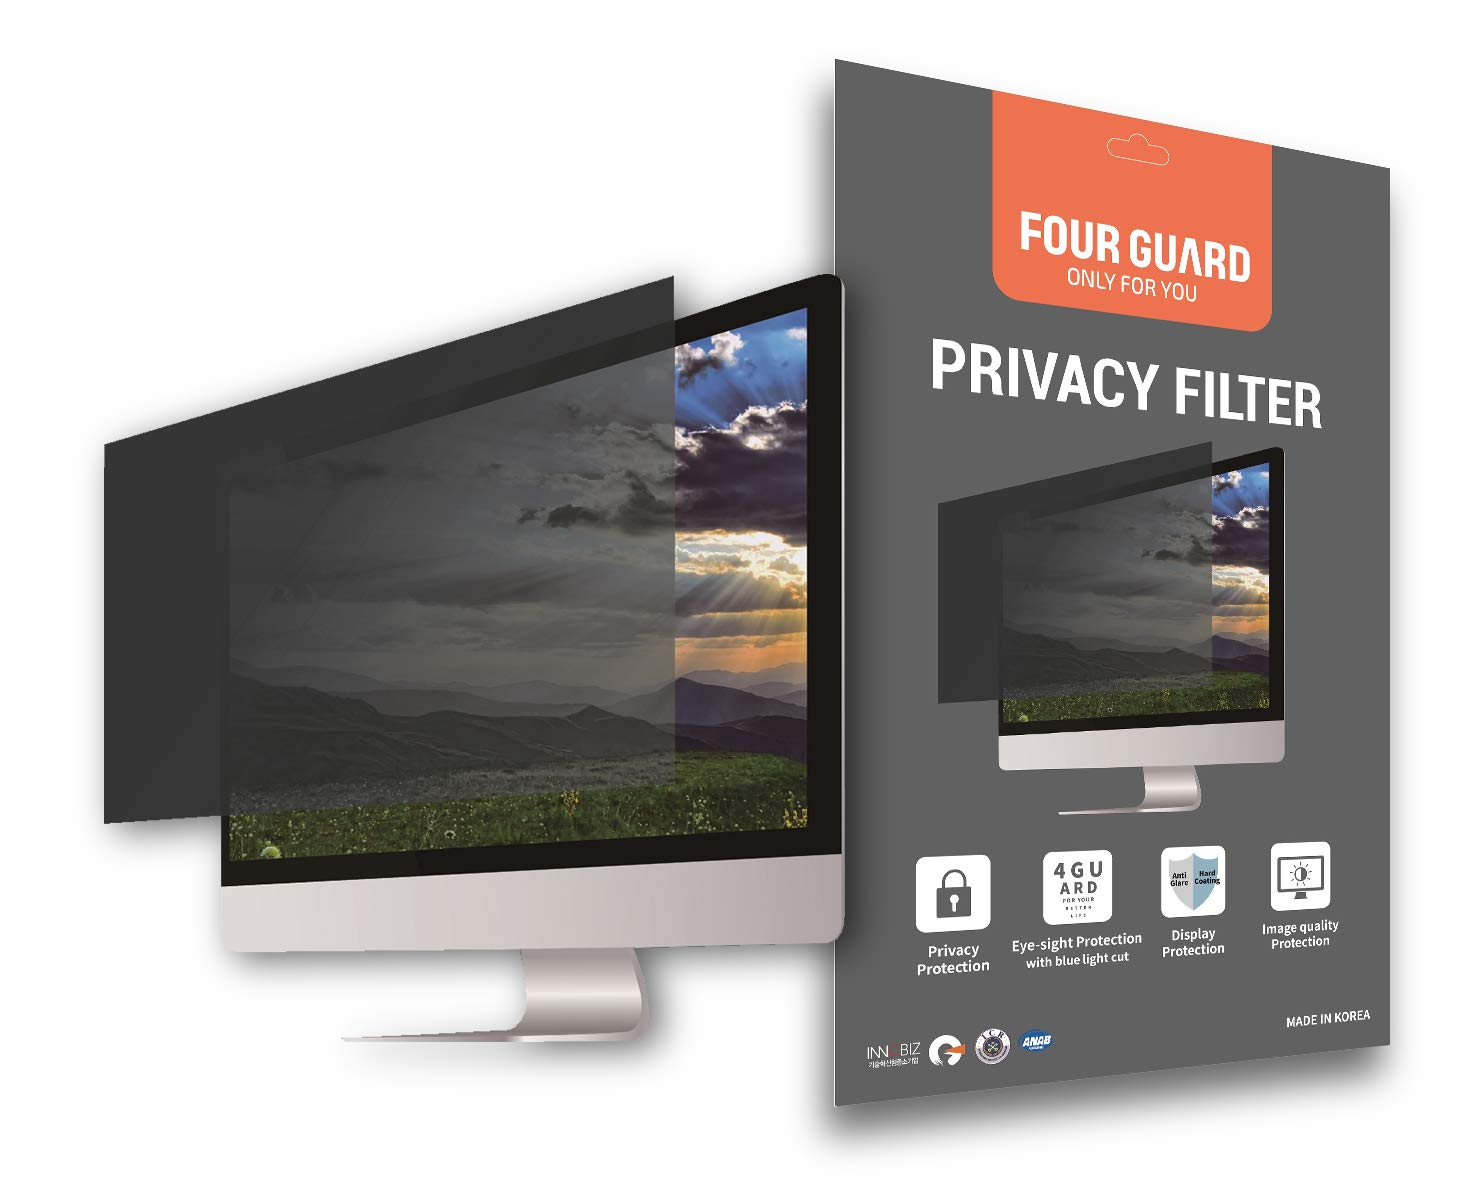 Four Guard Privacy Screen Filter for Computer Monitor 19.5 Inch 16:9 Widescreen - Privacy Protection Blue Light Reduction Anti Glare Anti Scratch Protector Film by Four Guard